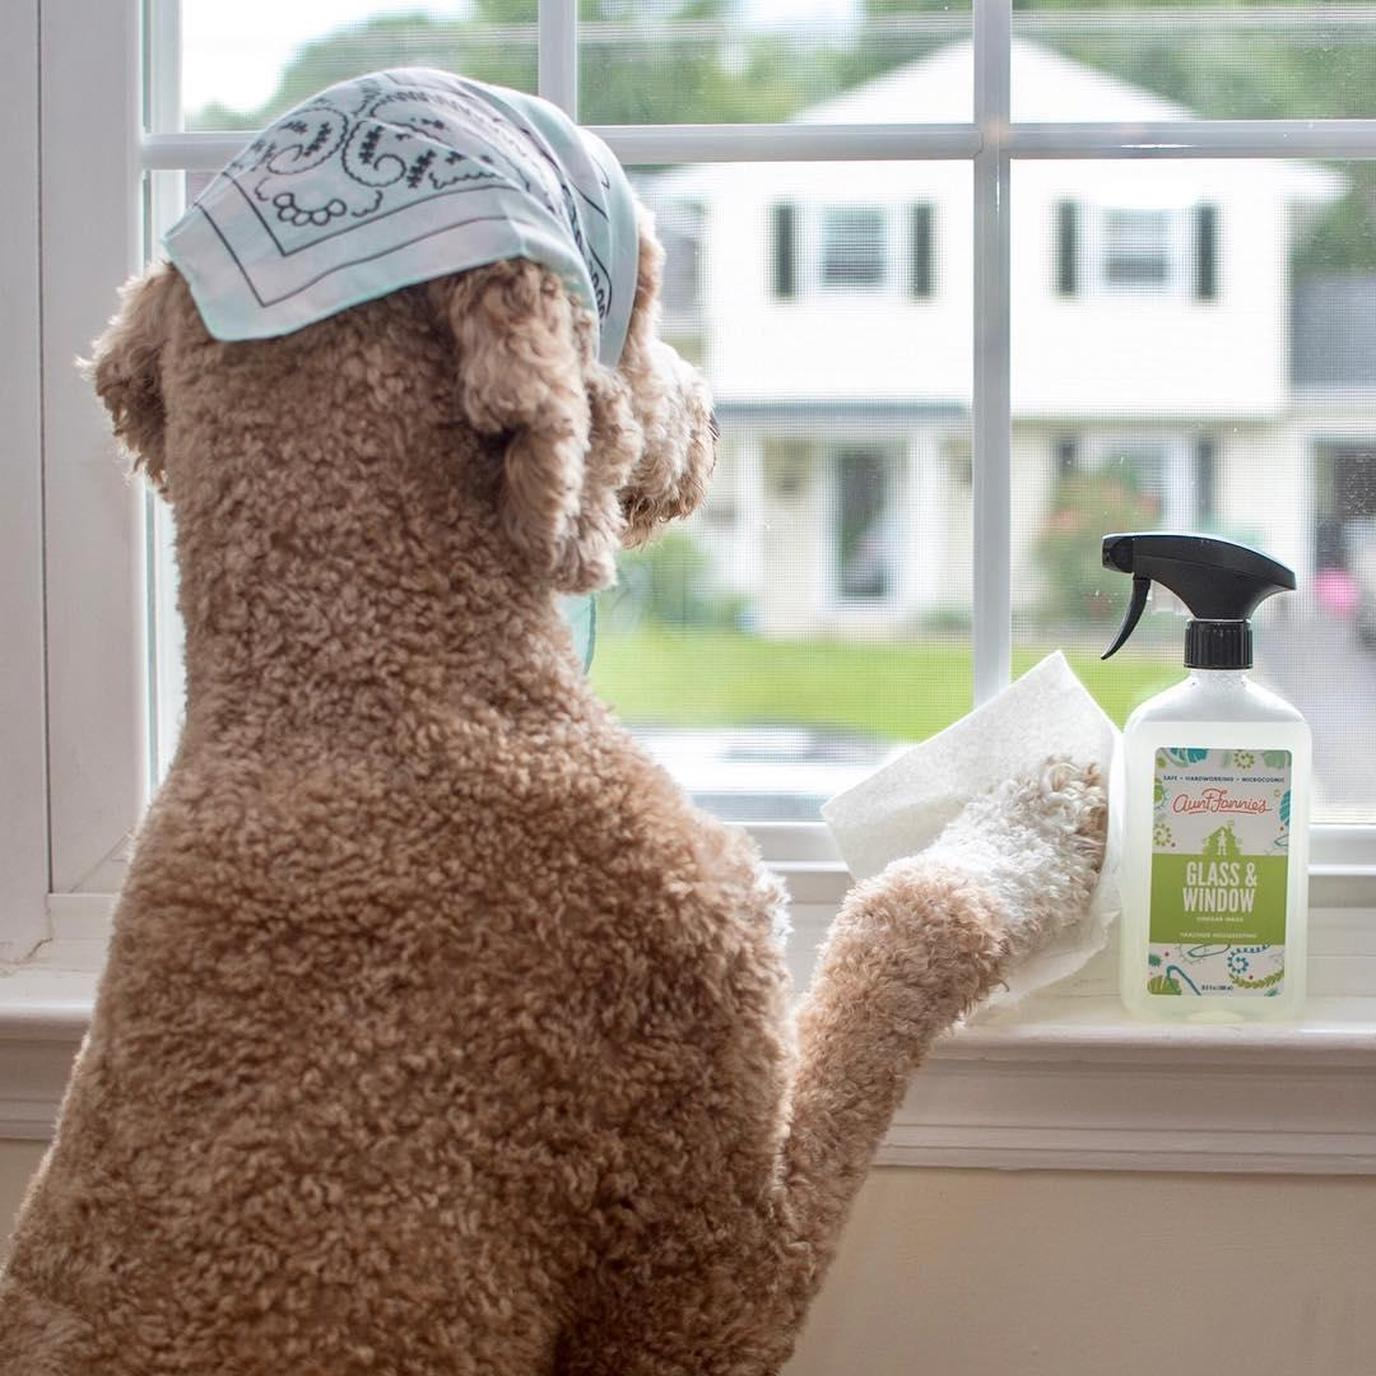 Aunt Fannie's Glass & Window Cleaning Vinegar Wash is an all-natural, pet safe window cleaner.